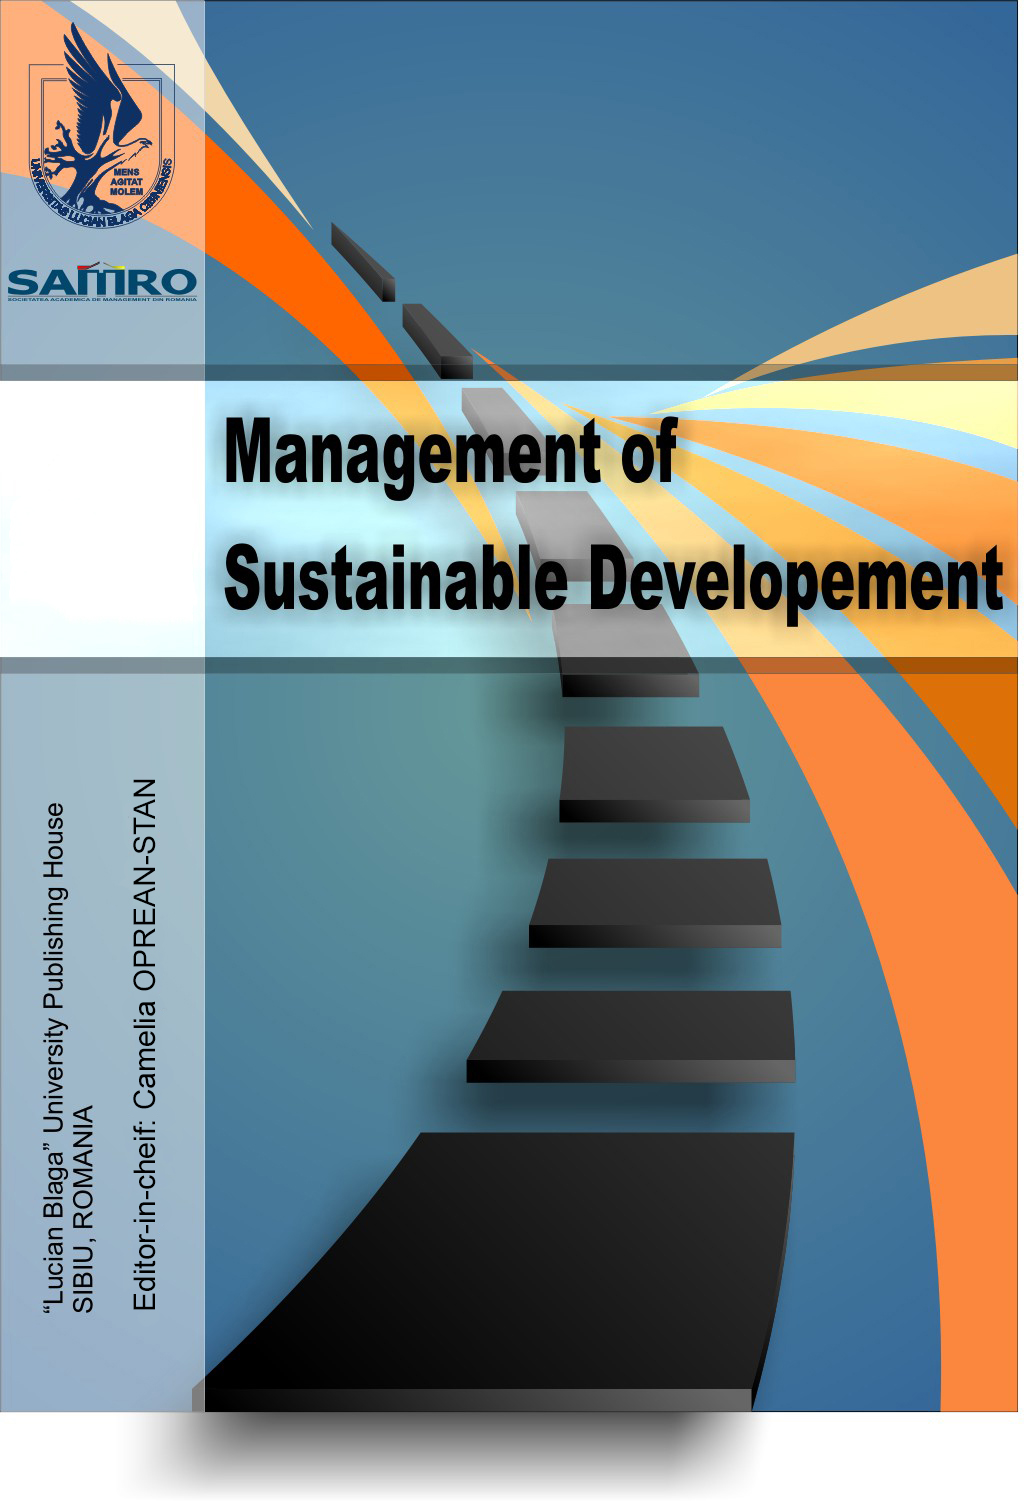 Management of Sustainable Development